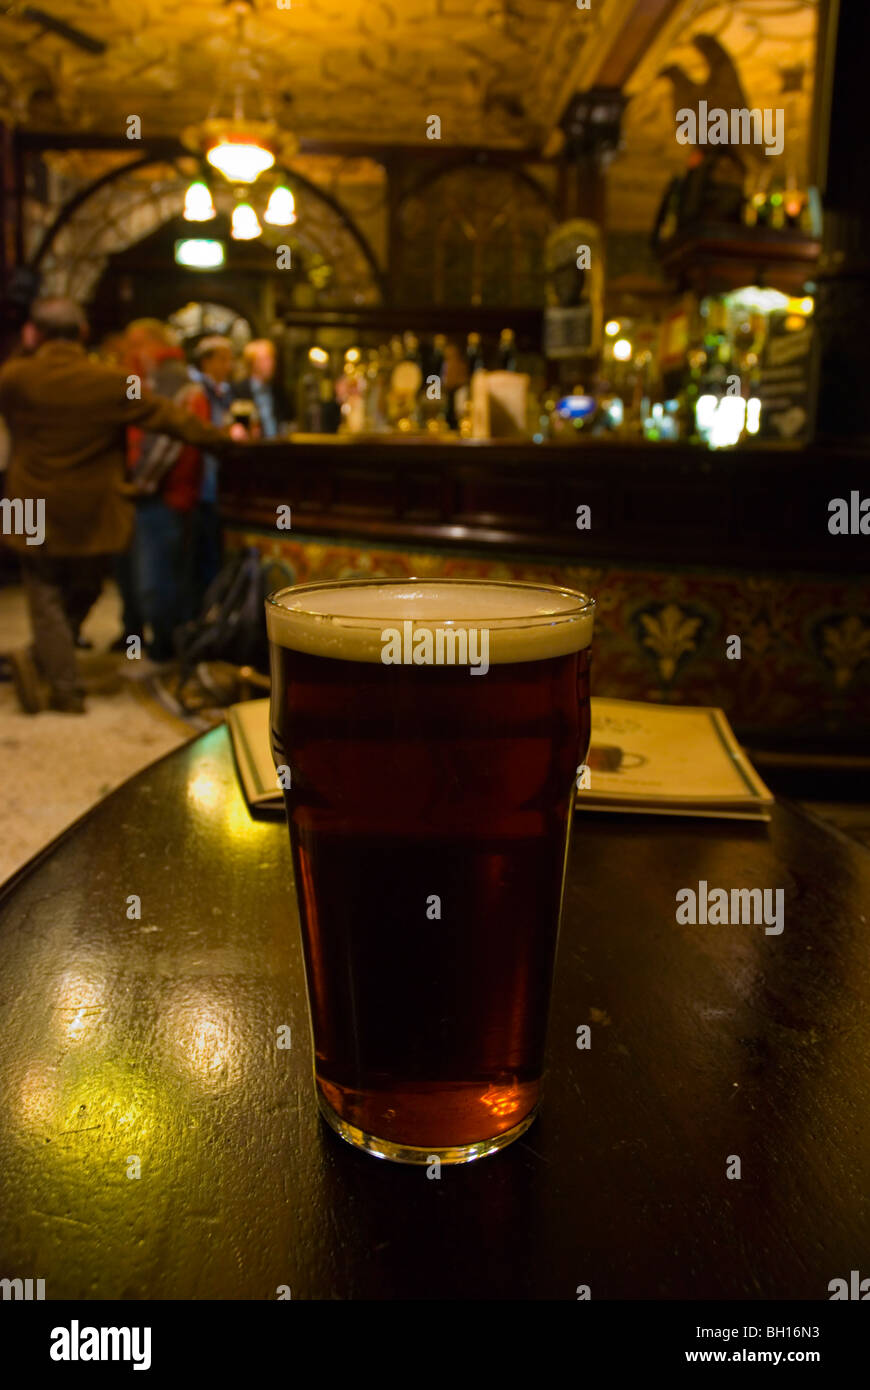 Pint of cask ale in The Philharmonic pub Liverpool England UK Europe - Stock Image